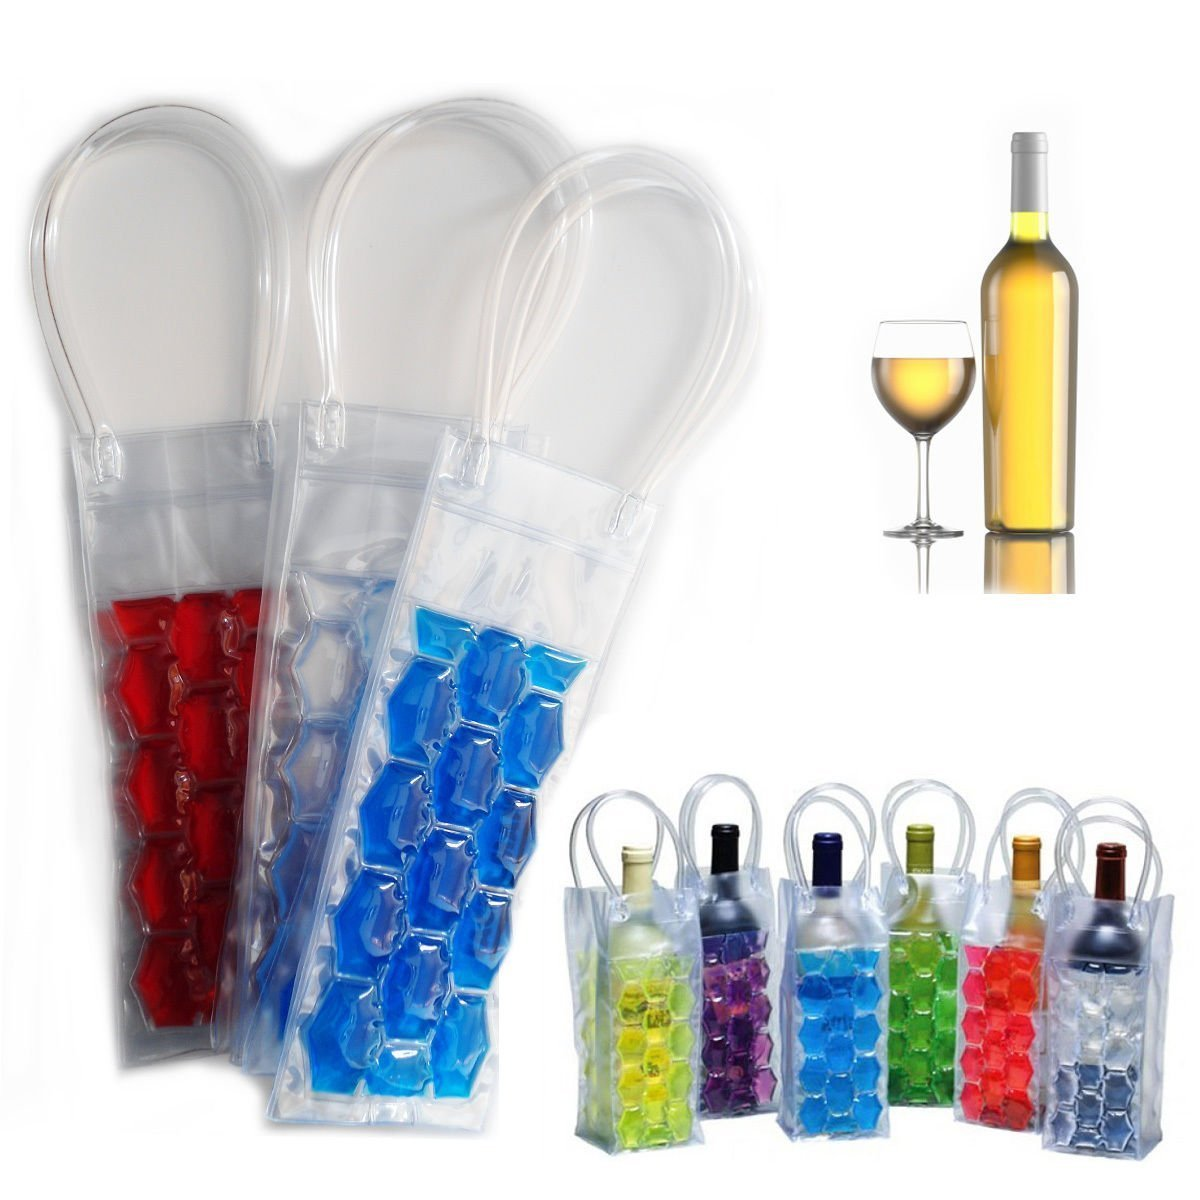 Gel Wine Bottle Chill Cooler Ice Bag - Freezer Bag- Vodka- Tequila Chiller- Cooler- Carrier